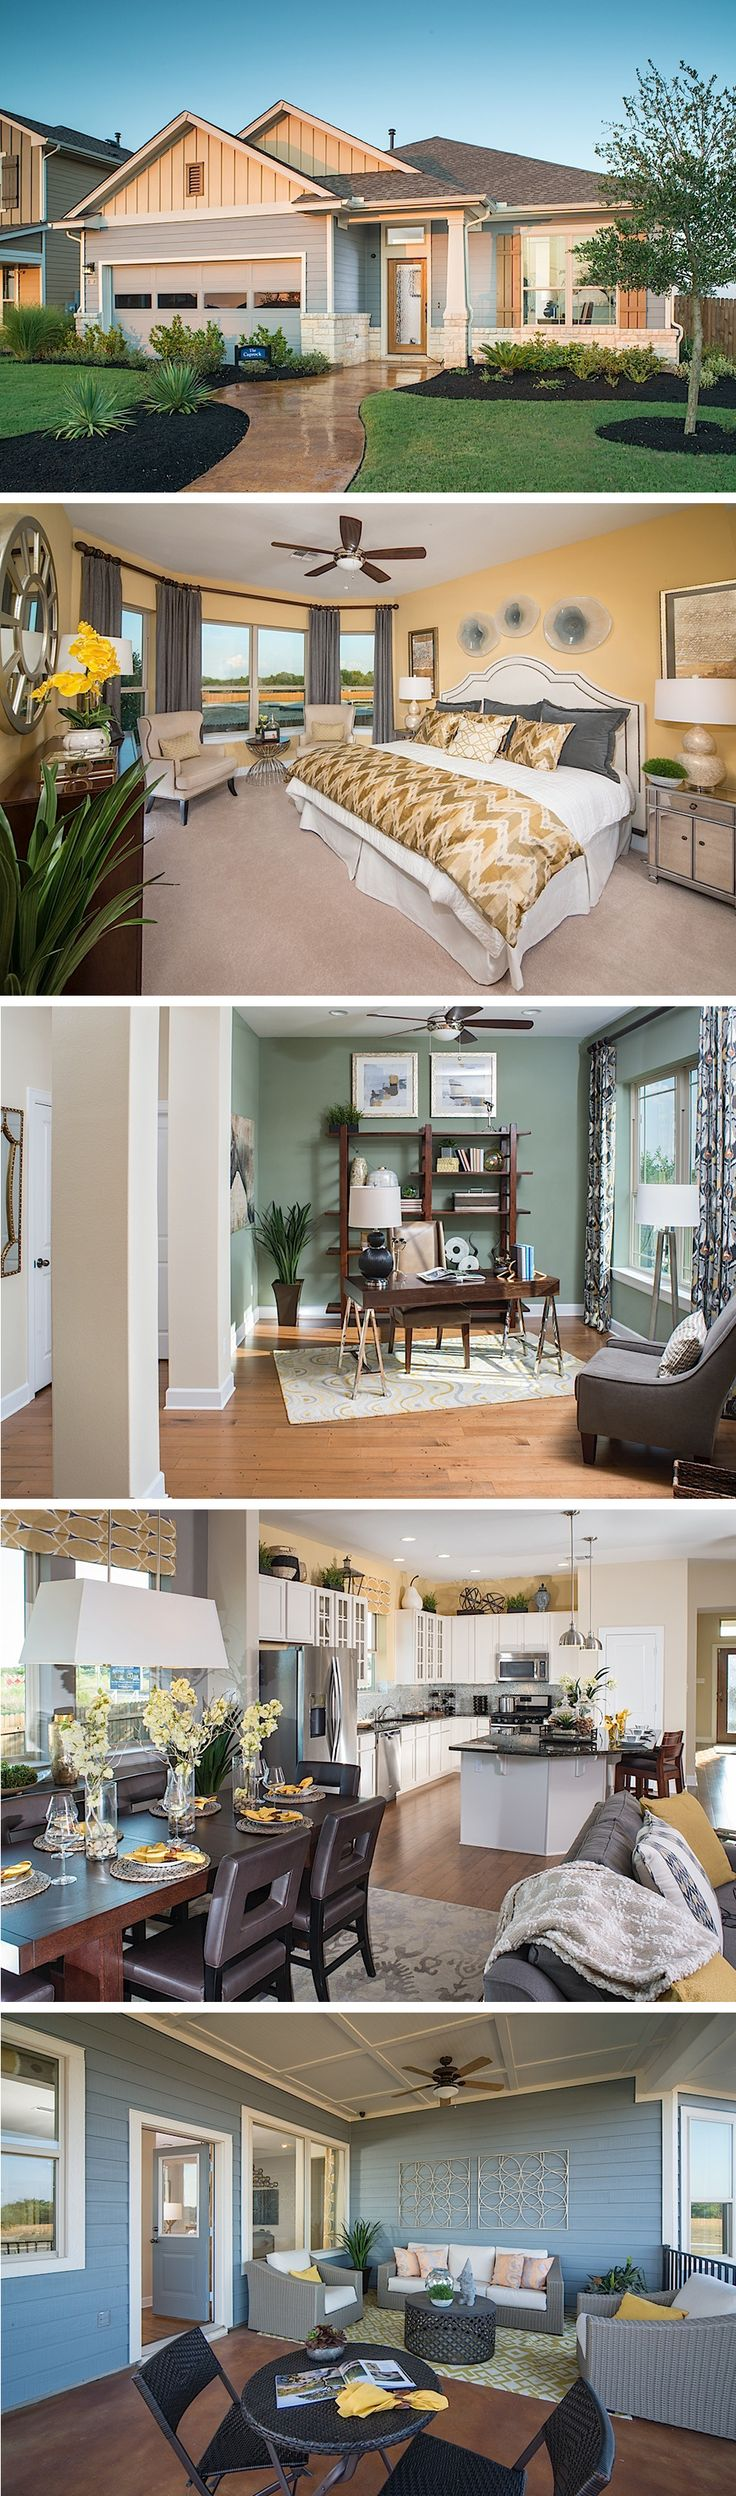 25 best ideas about extra rooms on pinterest office - What to do with an extra living room ...